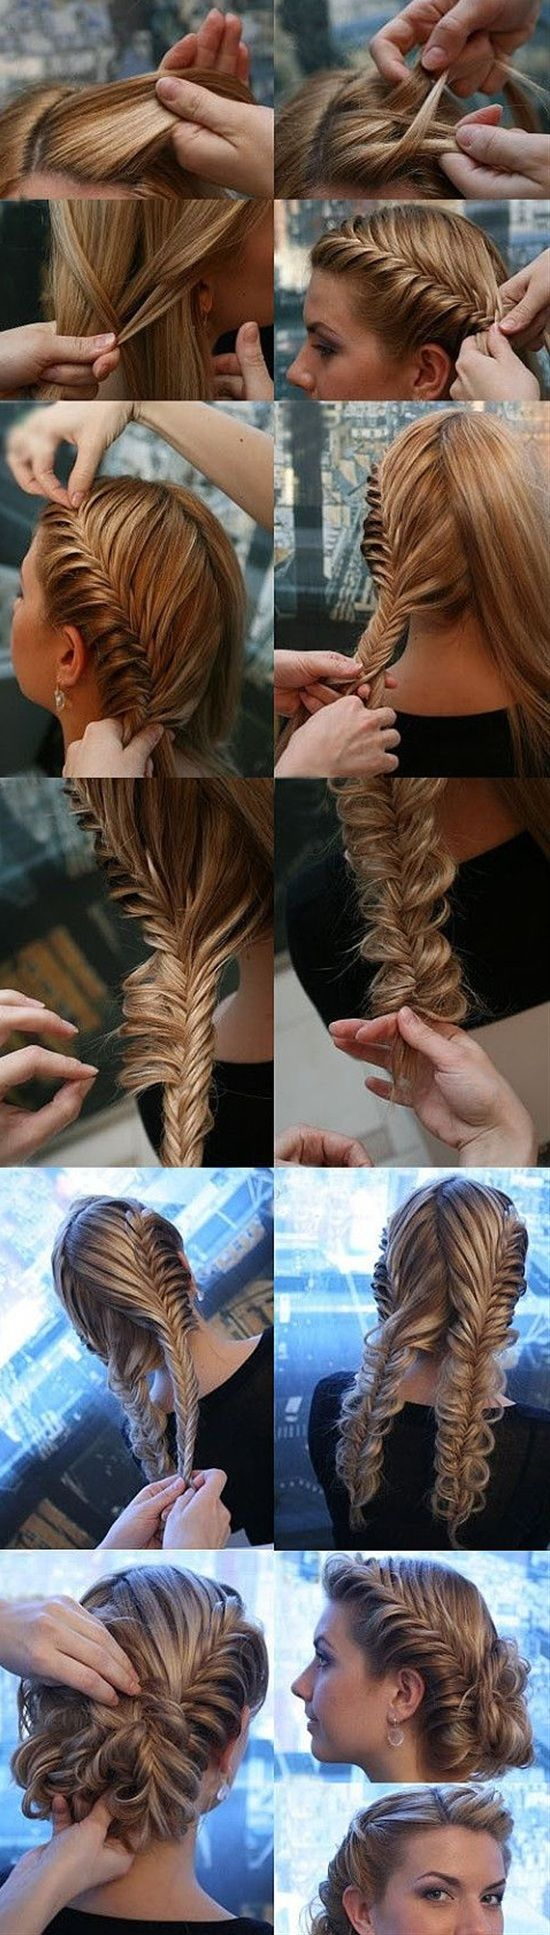 Best hairstyles images on pinterest hair and beauty